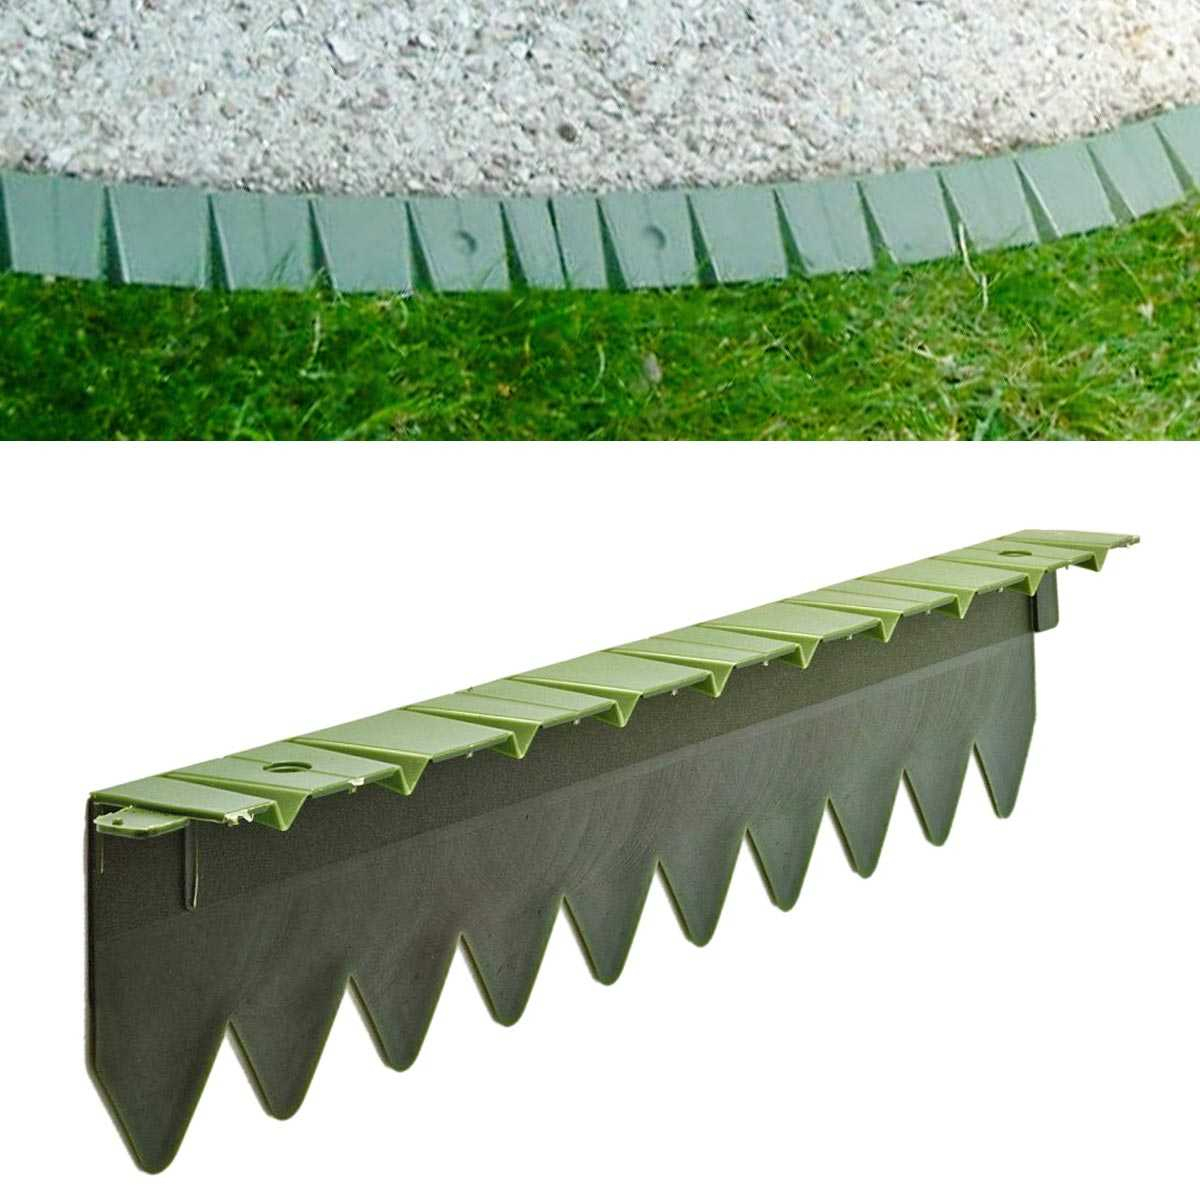 Bordure Droite De Jardin Pvc Gris 2M - Catalogue Amenagement ... serapportantà Bordure Beton Bricoman